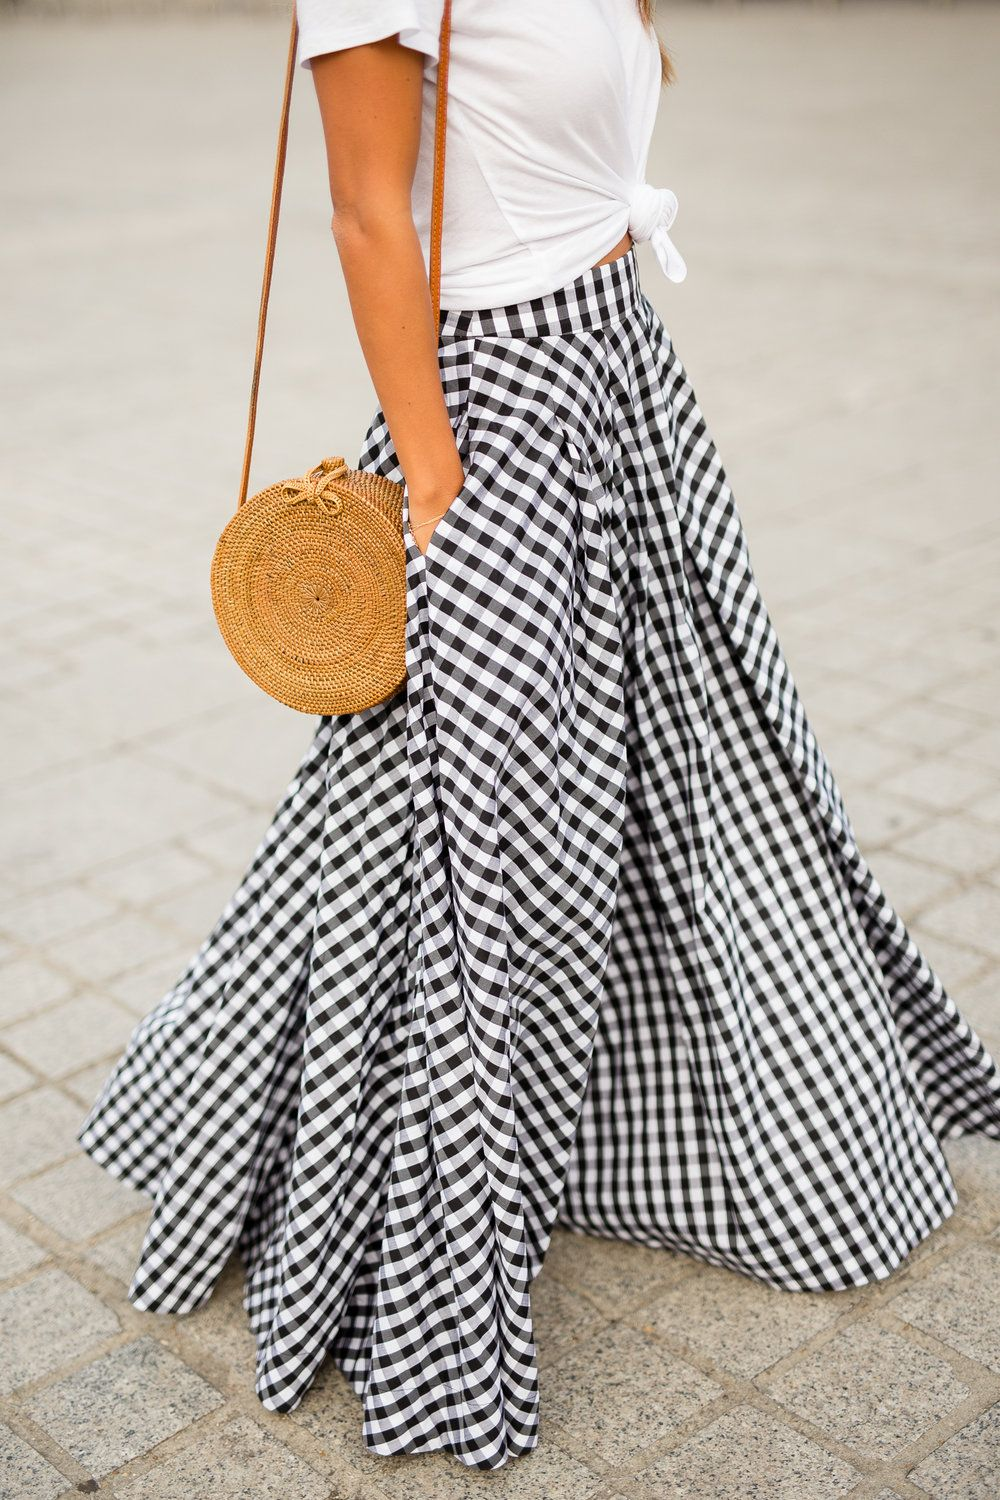 Gingham Skirt + Tied Up Tee